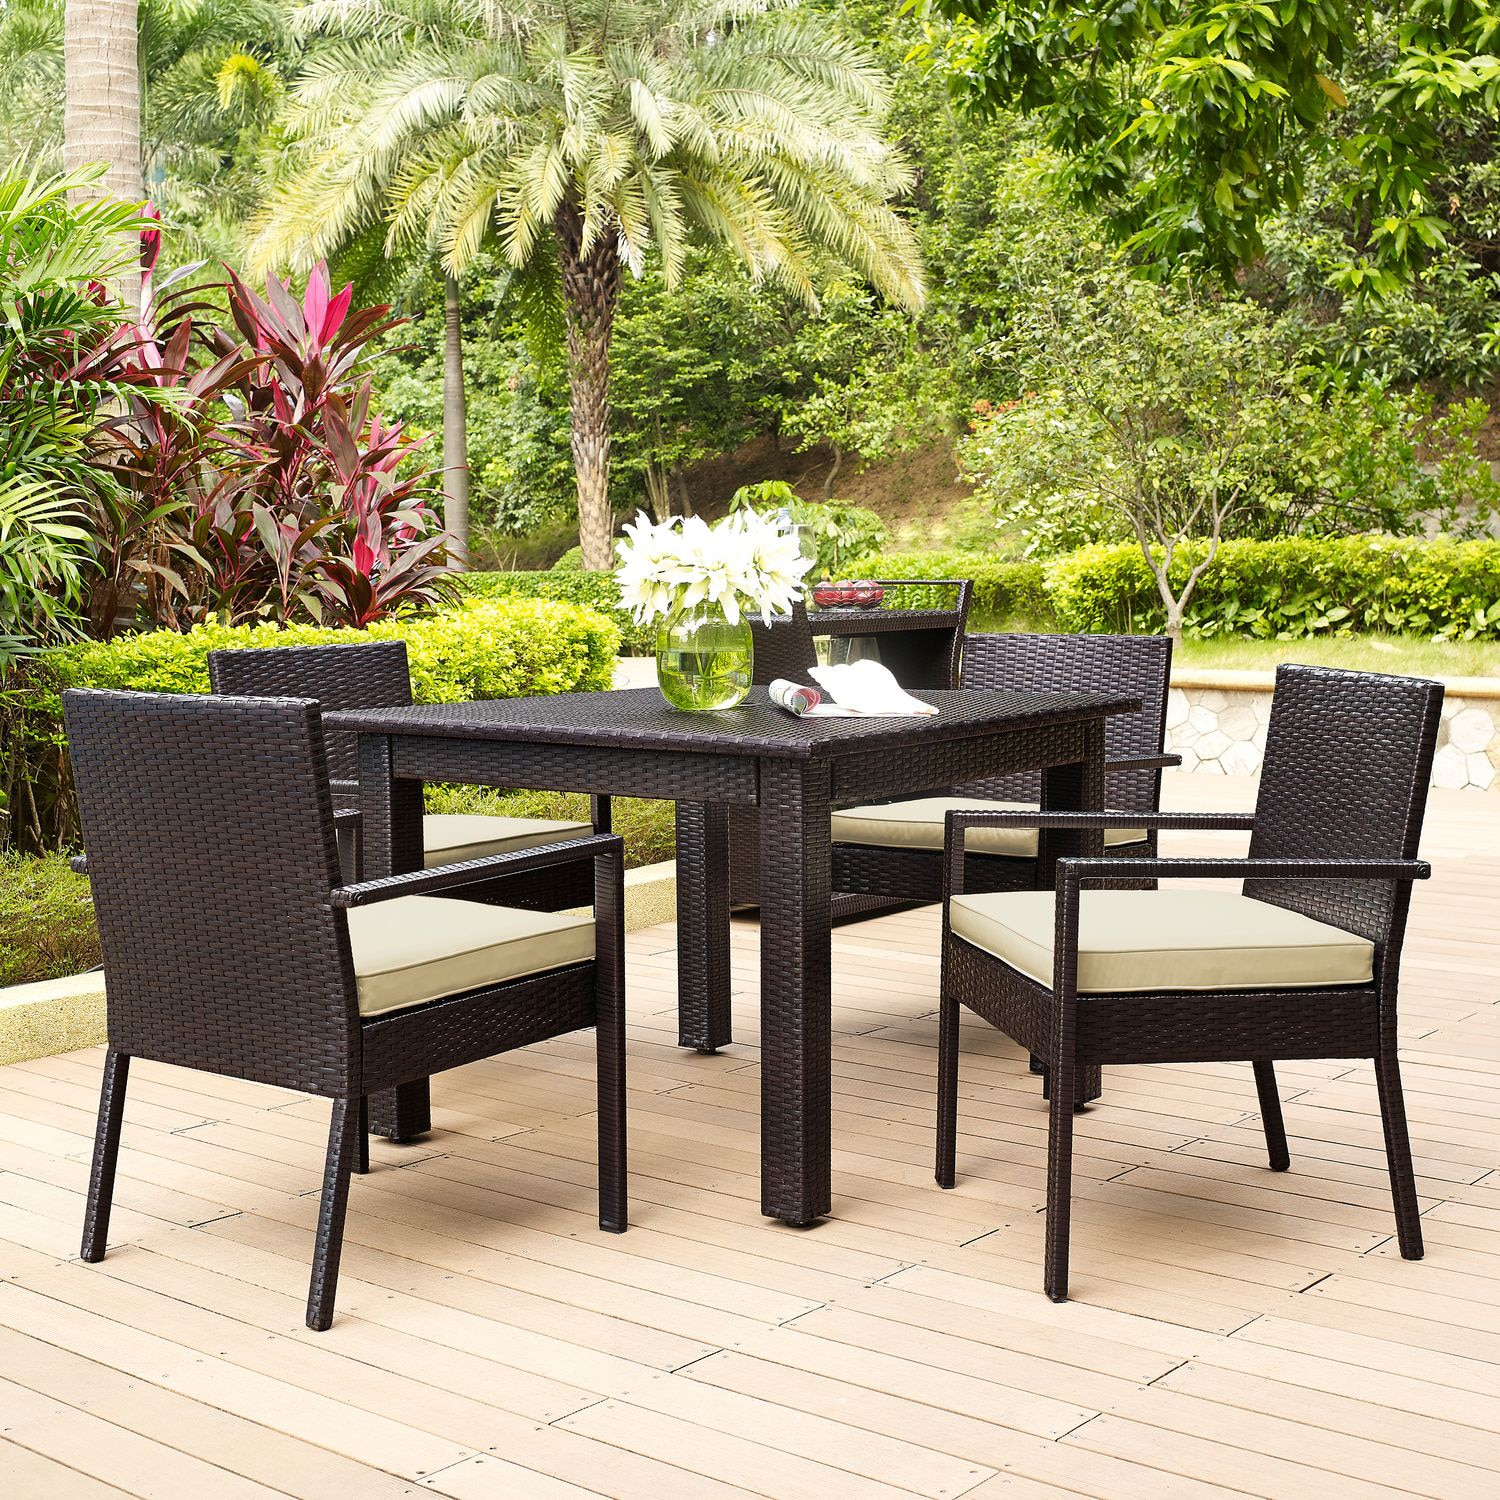 Outdoor Furniture - Aldo Outdoor Table and 4 Arm Chairs Set - Brown - Aldo Outdoor Table And 4 Arm Chairs Set - Brown Value City